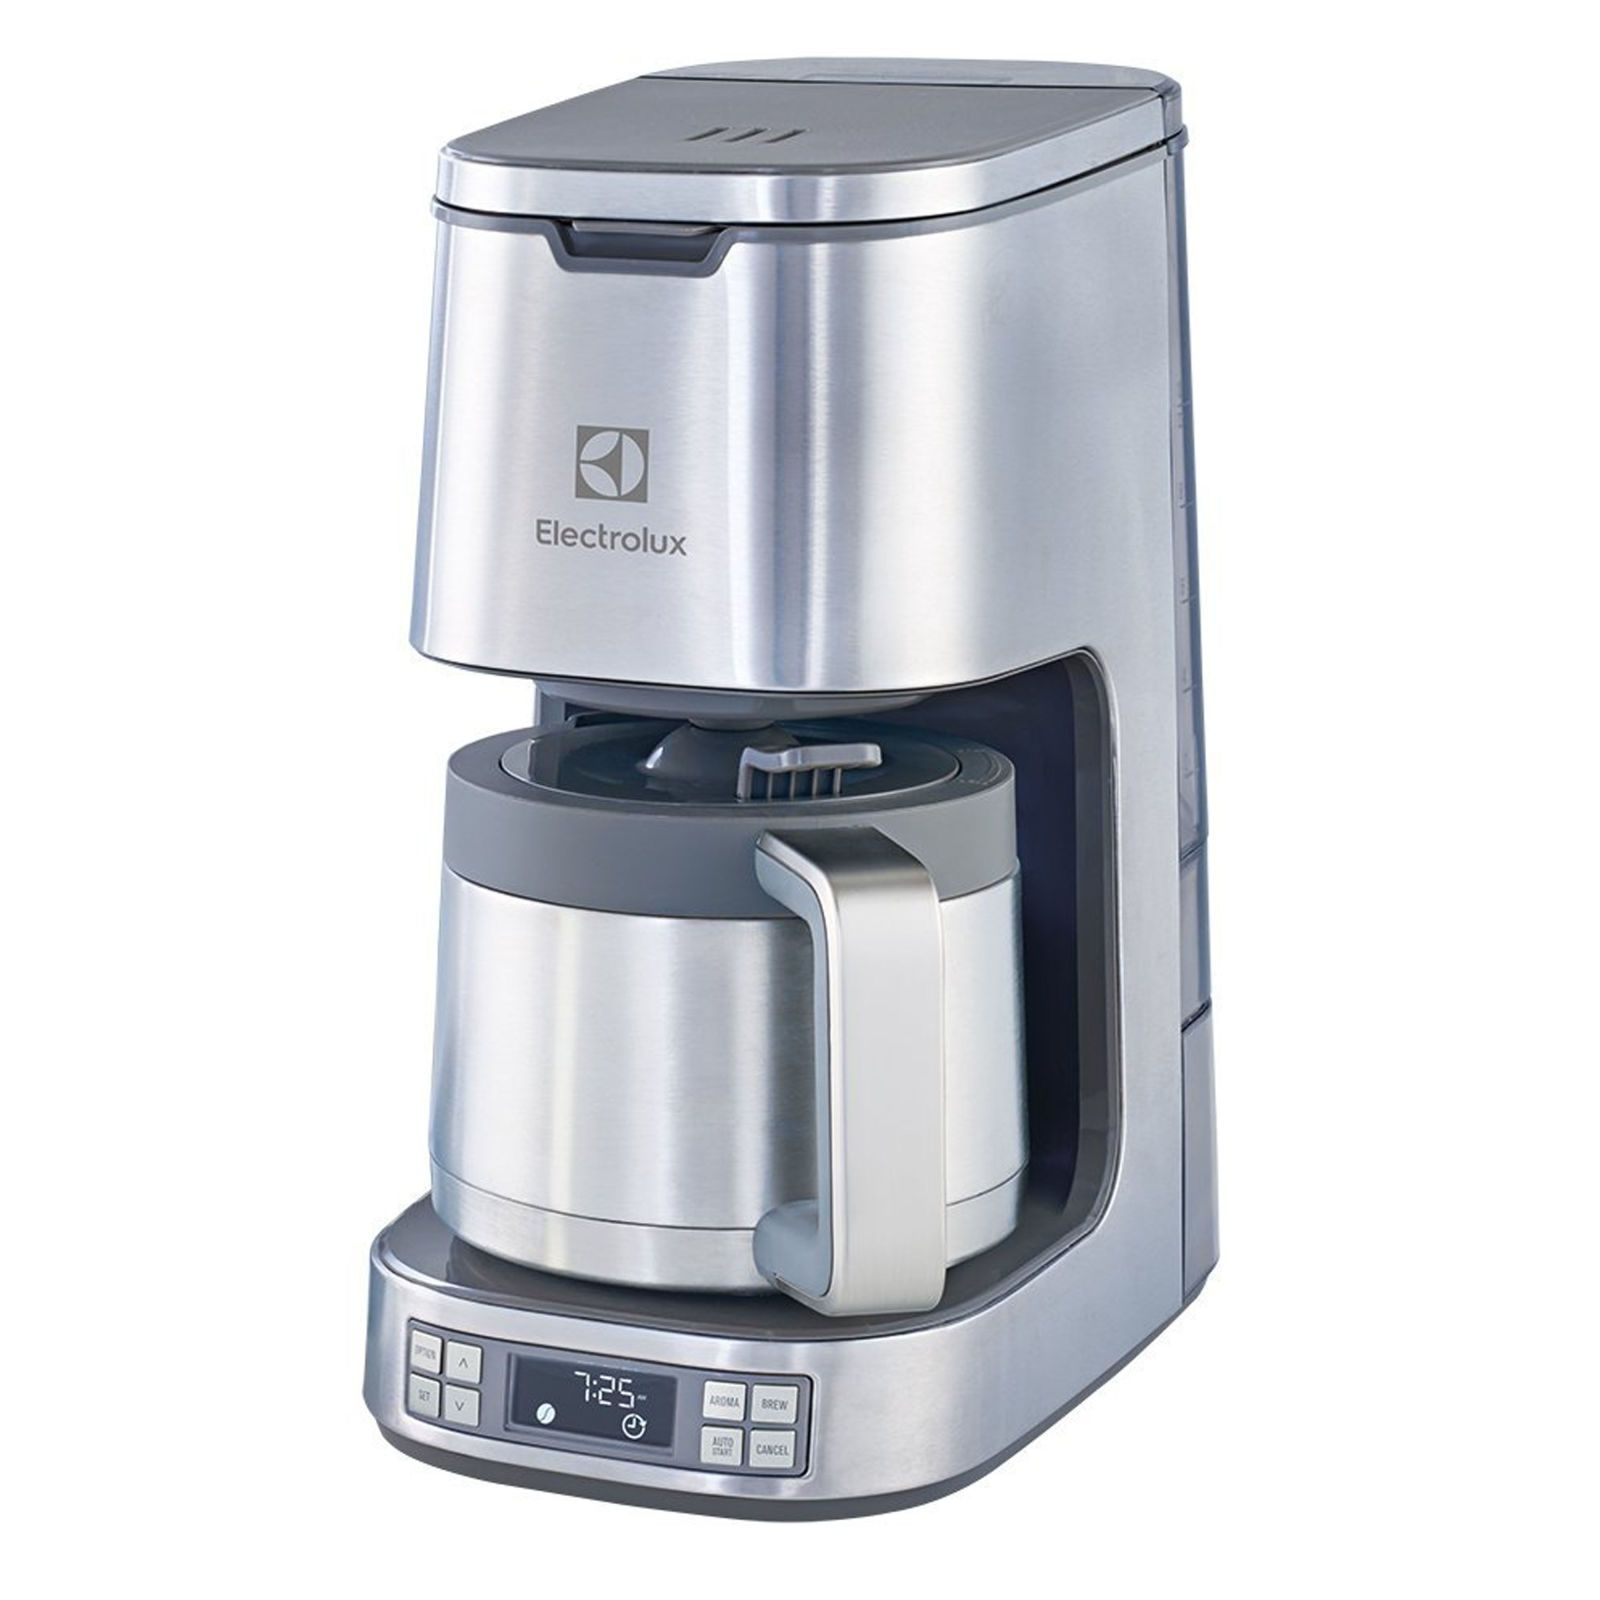 Electrolux Expressionist Thermal Coffee Maker ELTC10D8PS